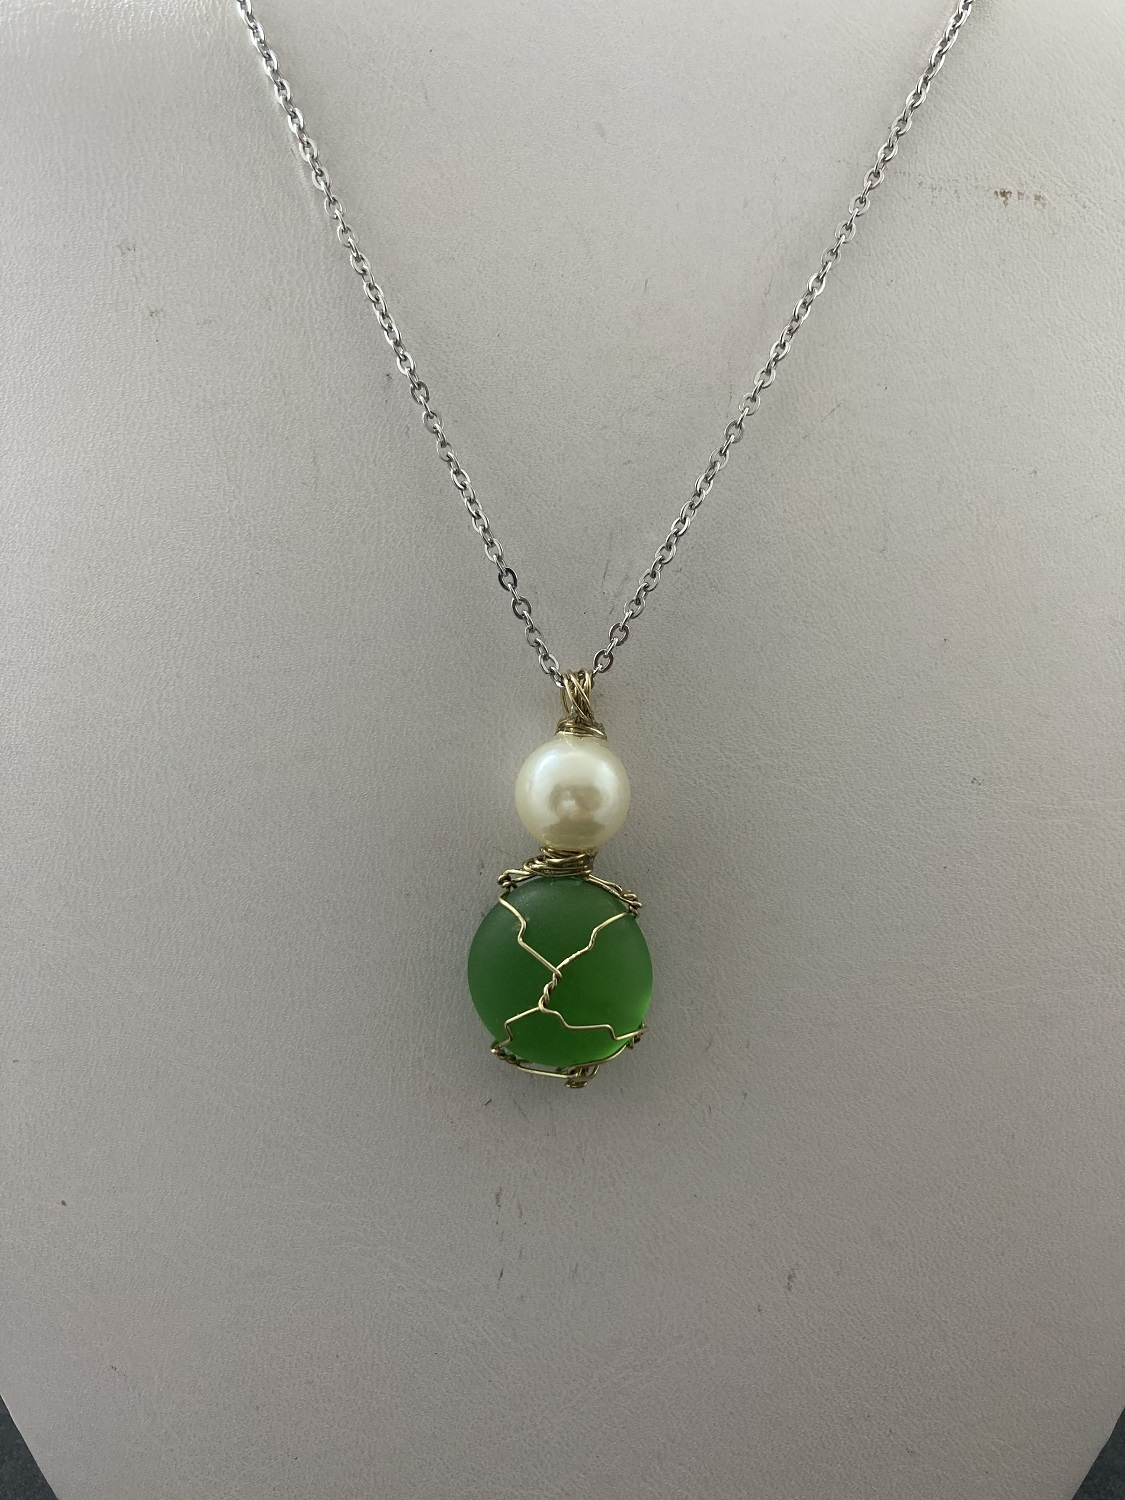 Green glass stainless steel necklace with pearl bead